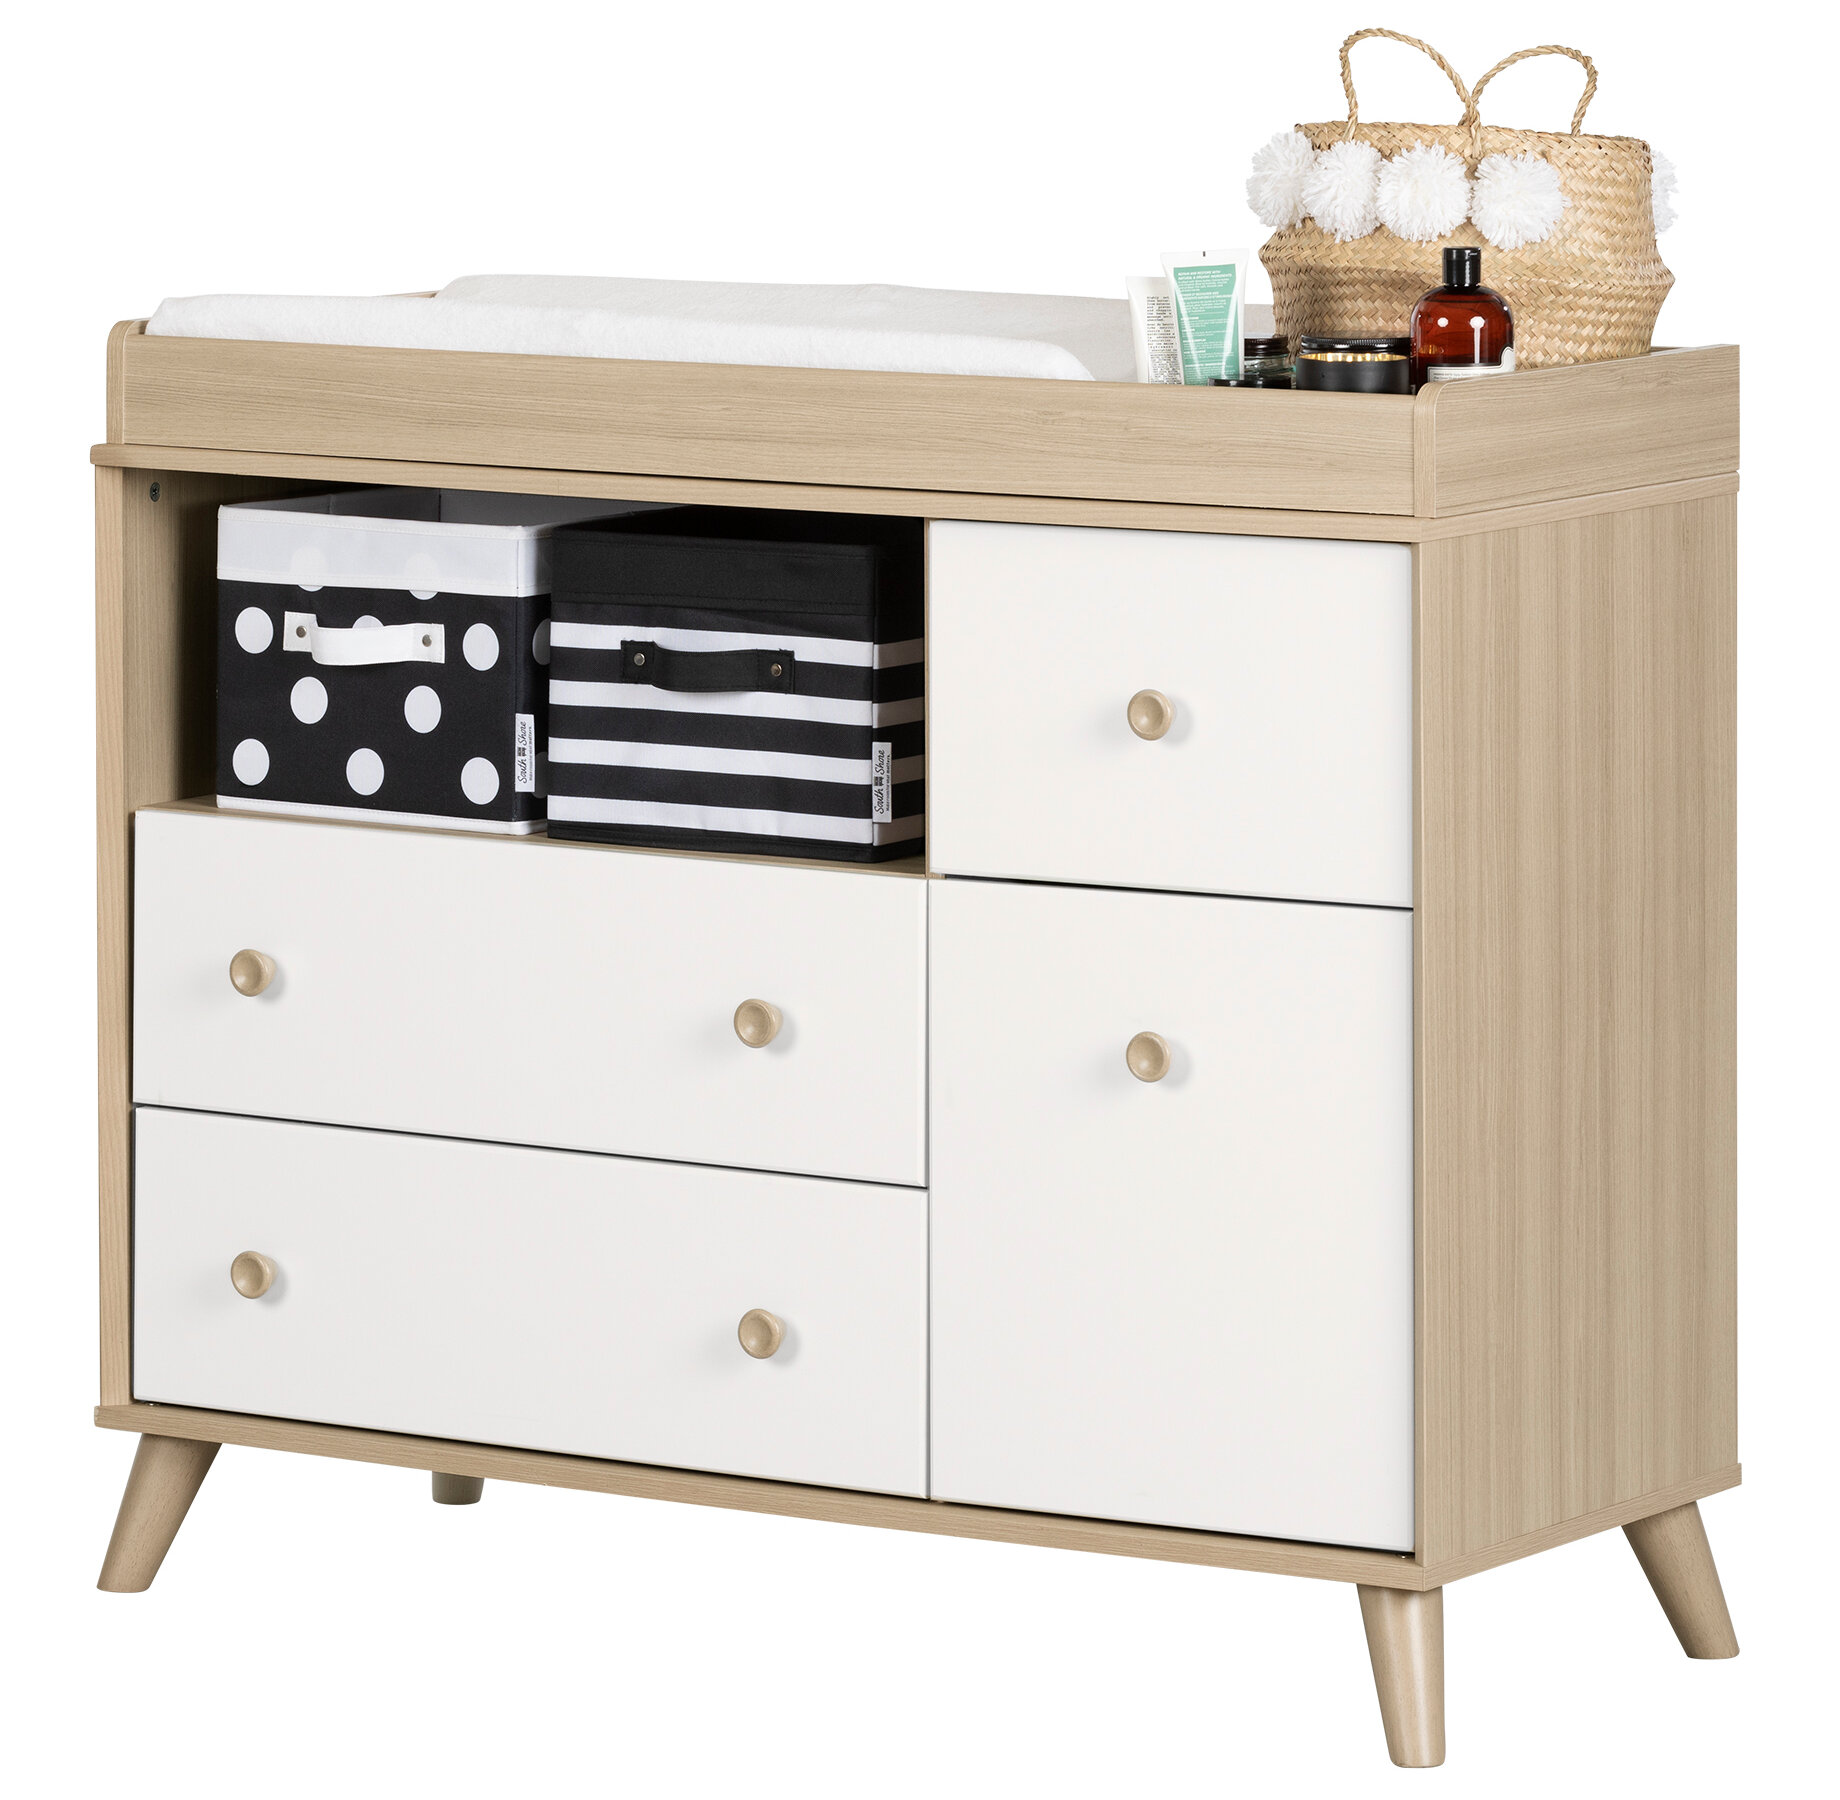 Image of: Abbeville Changing Table Dresser Reviews Allmodern